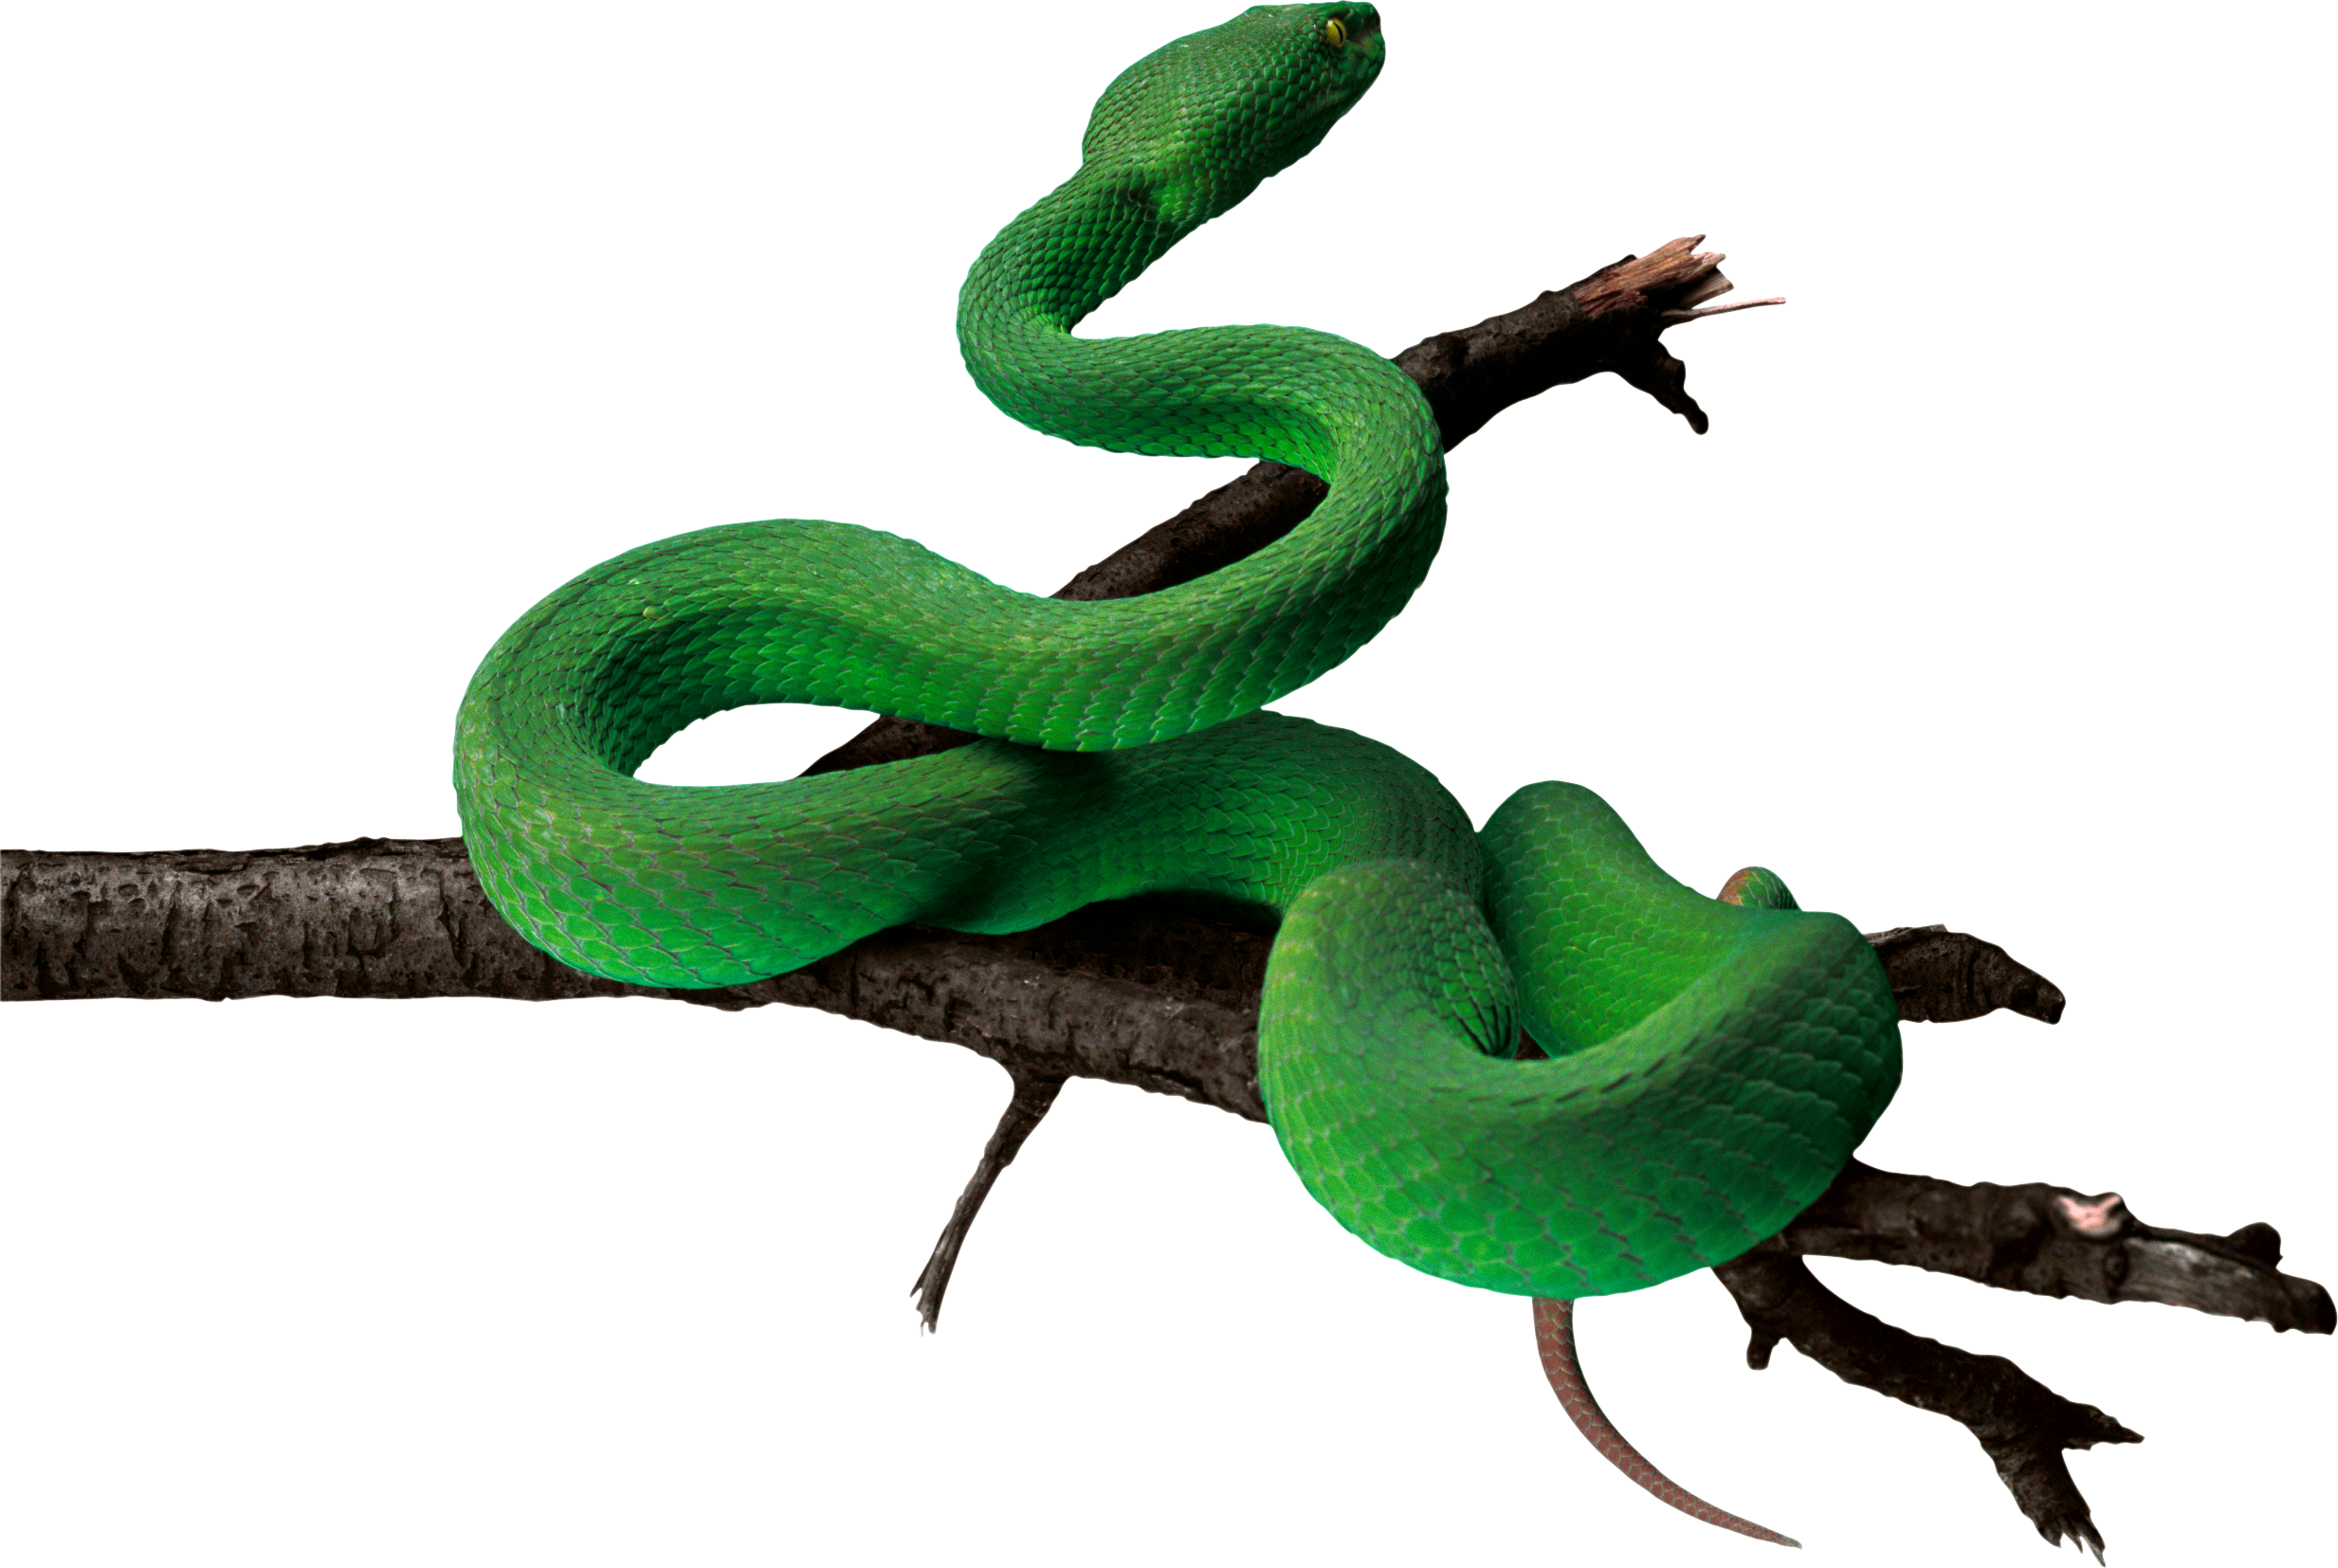 Snake clipart shadow. Green png animal pinterest